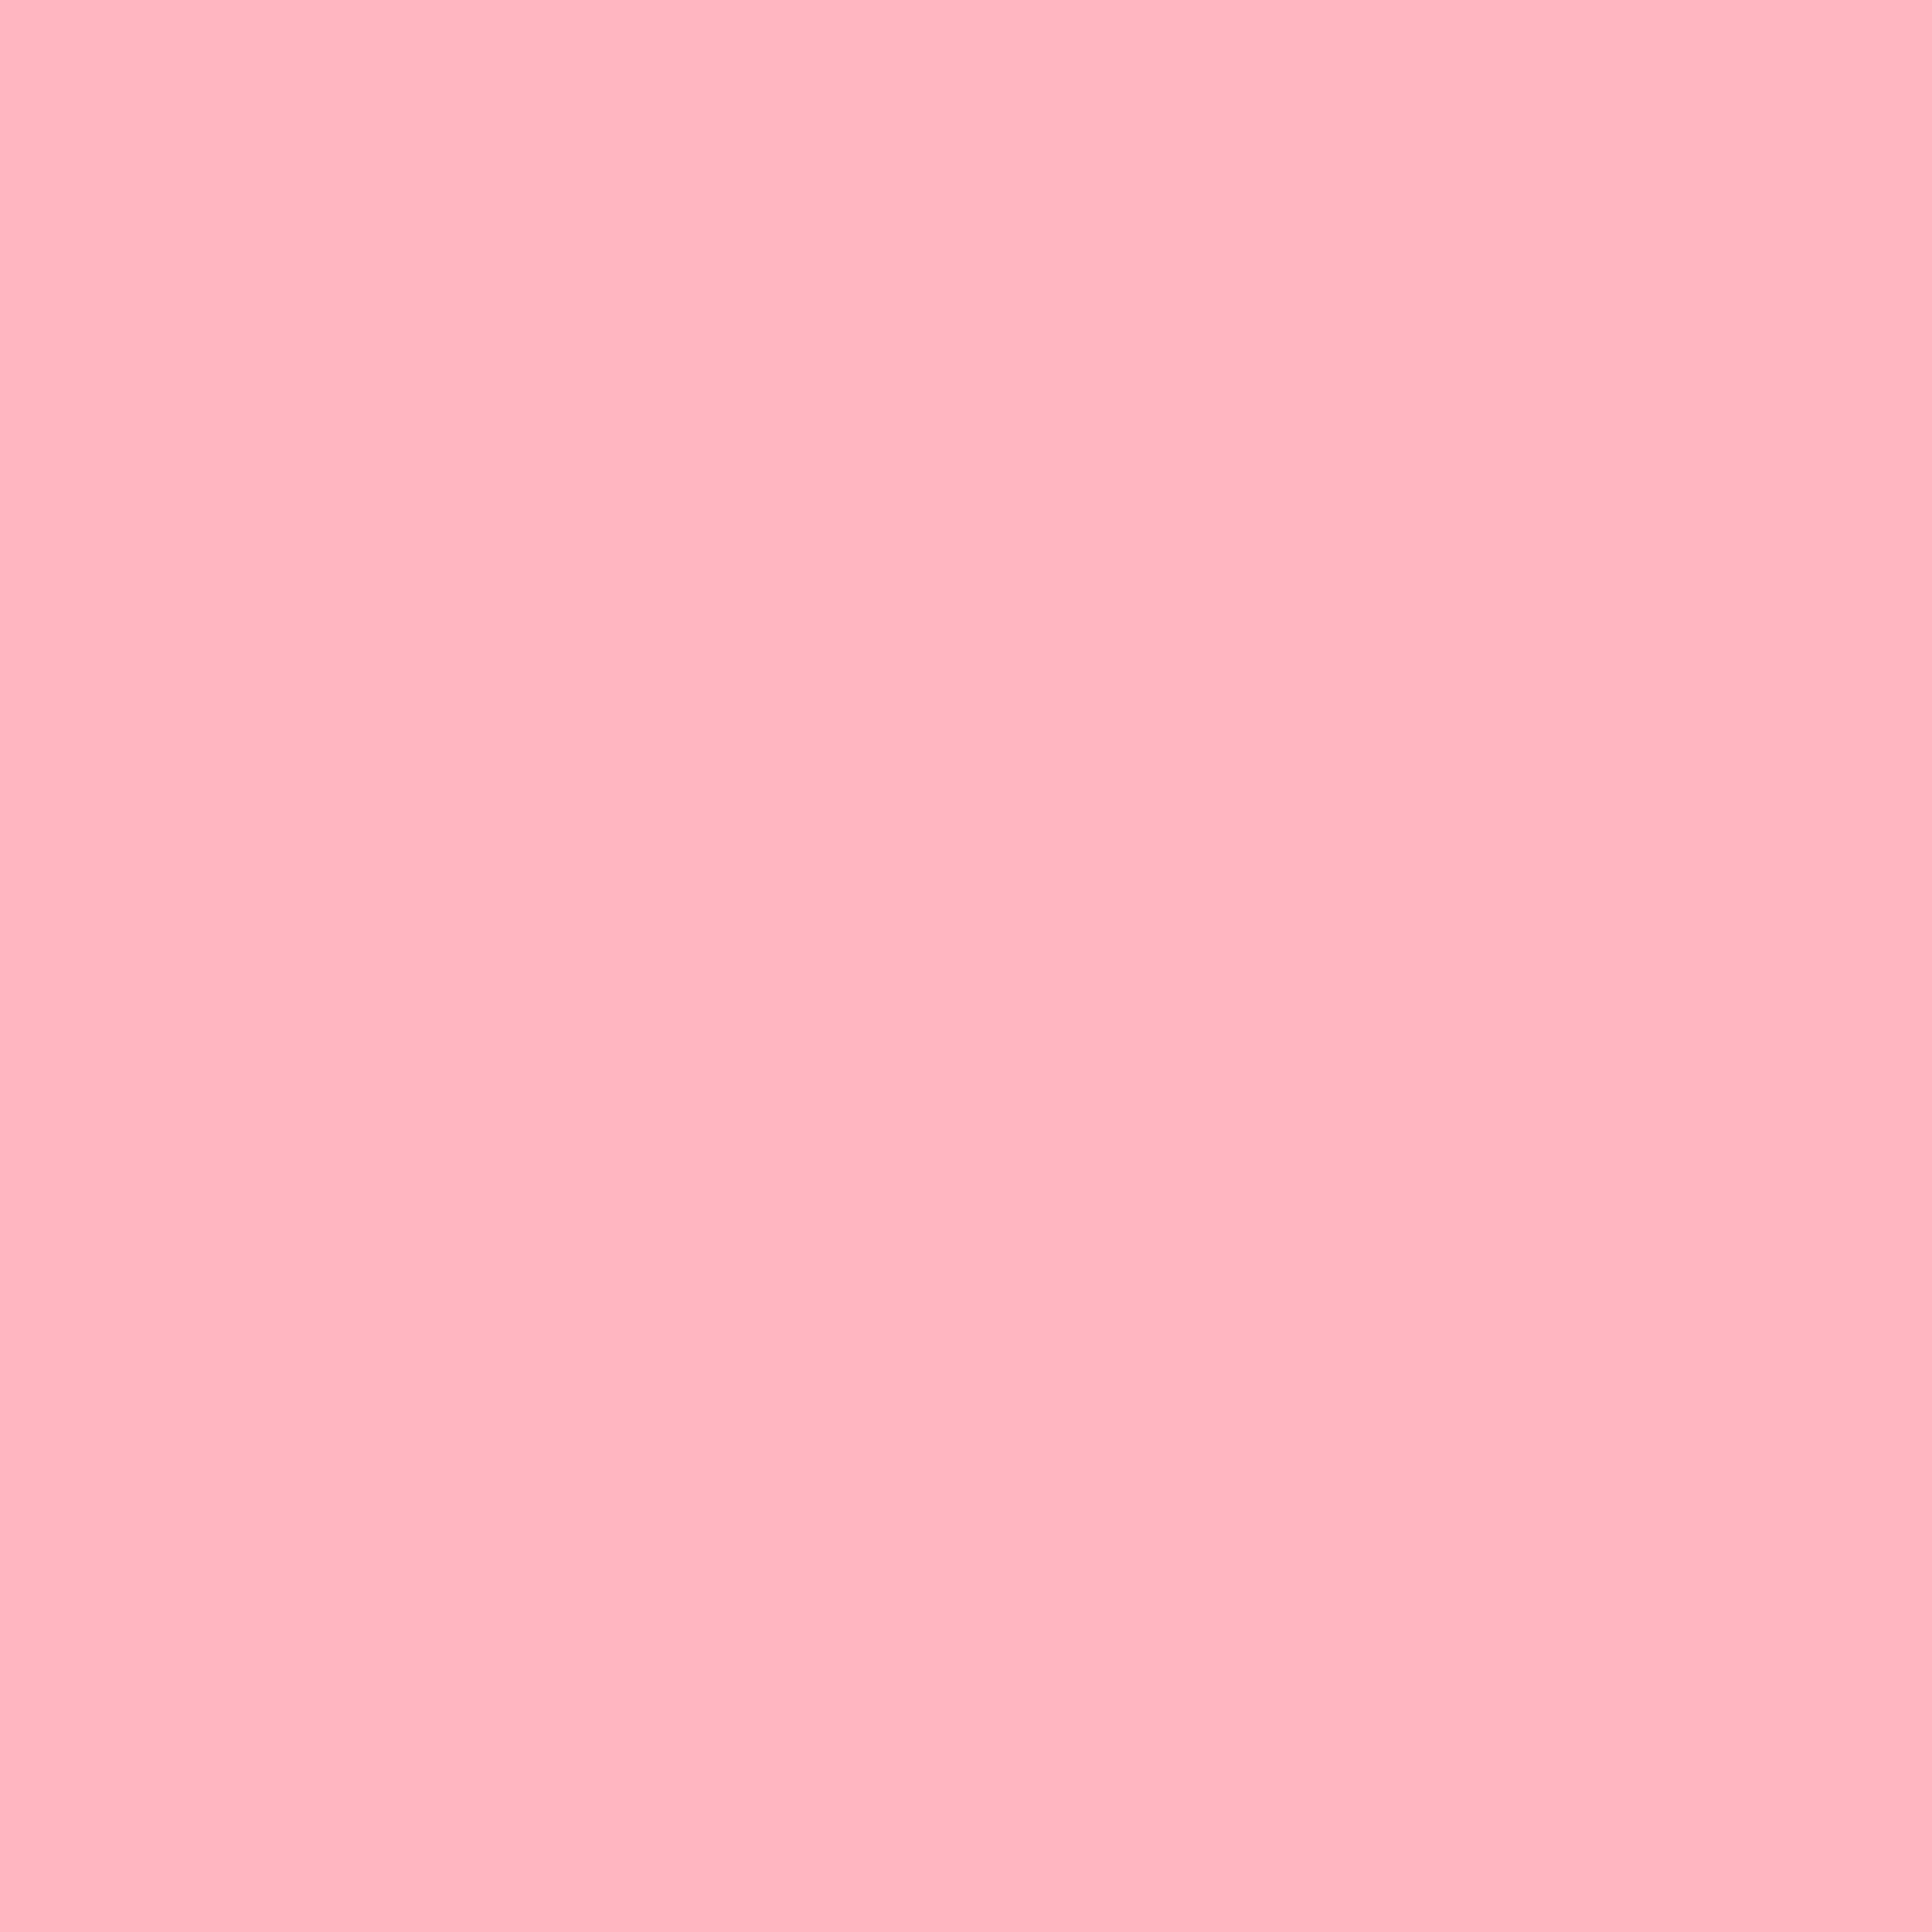 2048x2048 Light Pink Solid Color Background